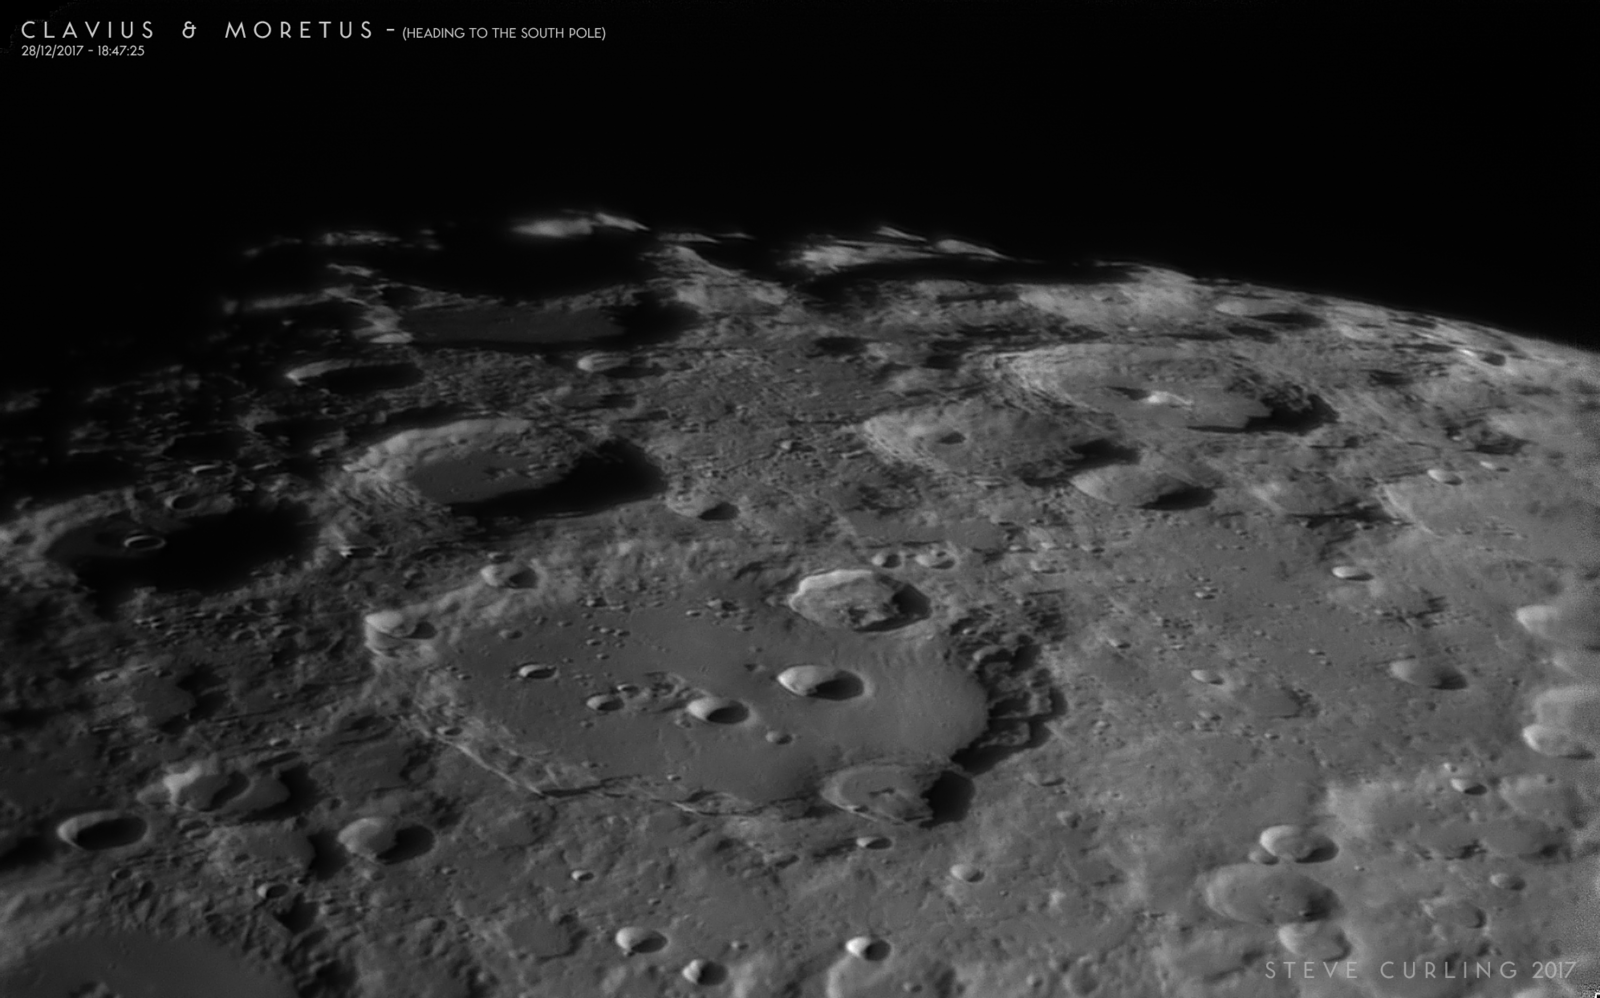 Clavius & Moretus - Heading to the south lunar pole